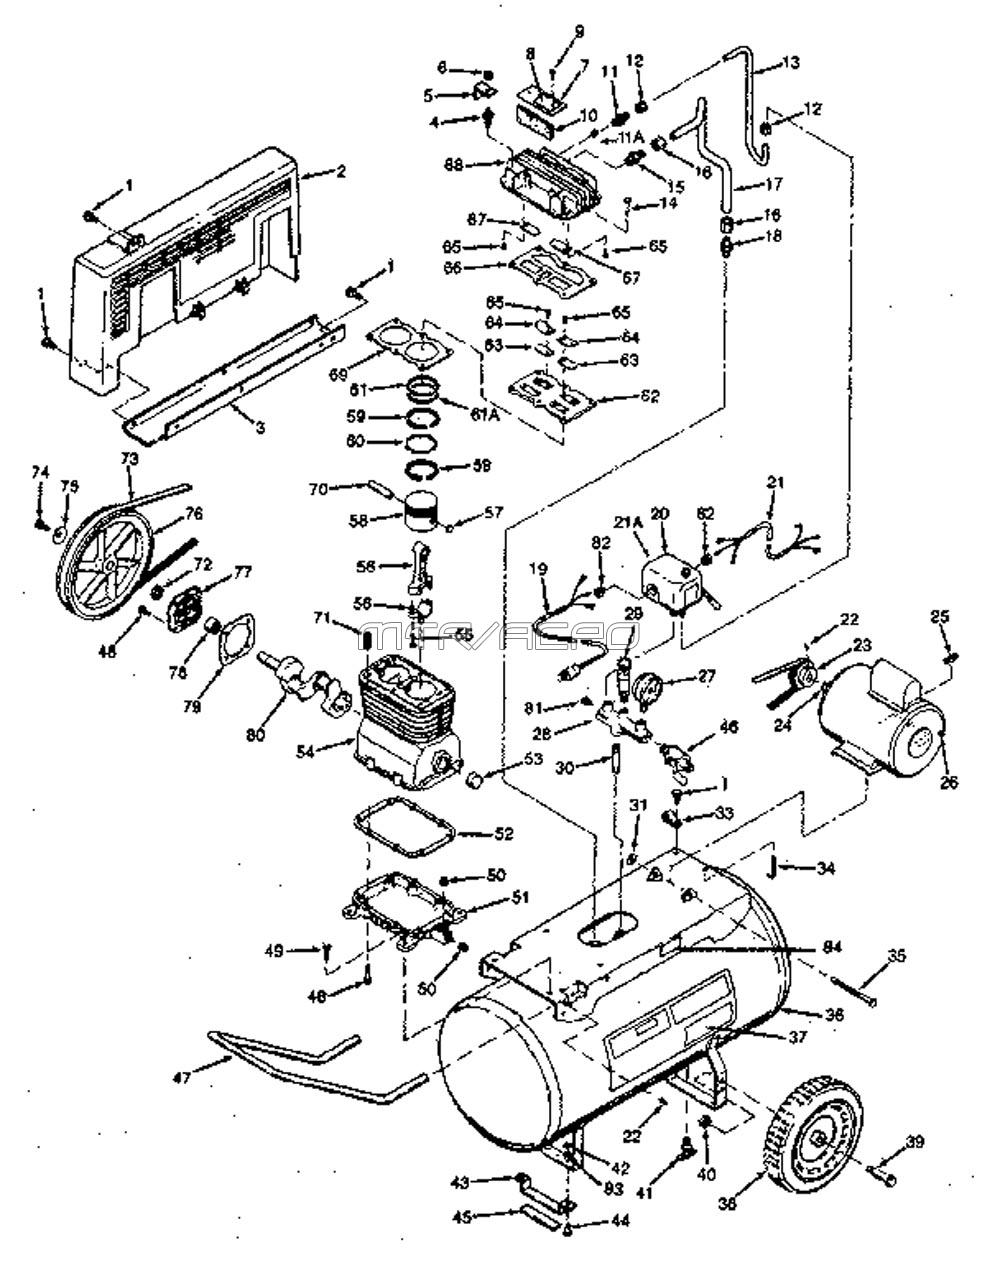 plete Electrical Wiring Diagram For 1940 Chevrolet Truck 59675 furthermore Hondac200 blogspot likewise Yamaha Parts Transmission 149550 C 435 440 681 additionally How A Wind Turbine Works additionally Air  pressor Parts 91915293 P 27444. on wiring diagram generator to home